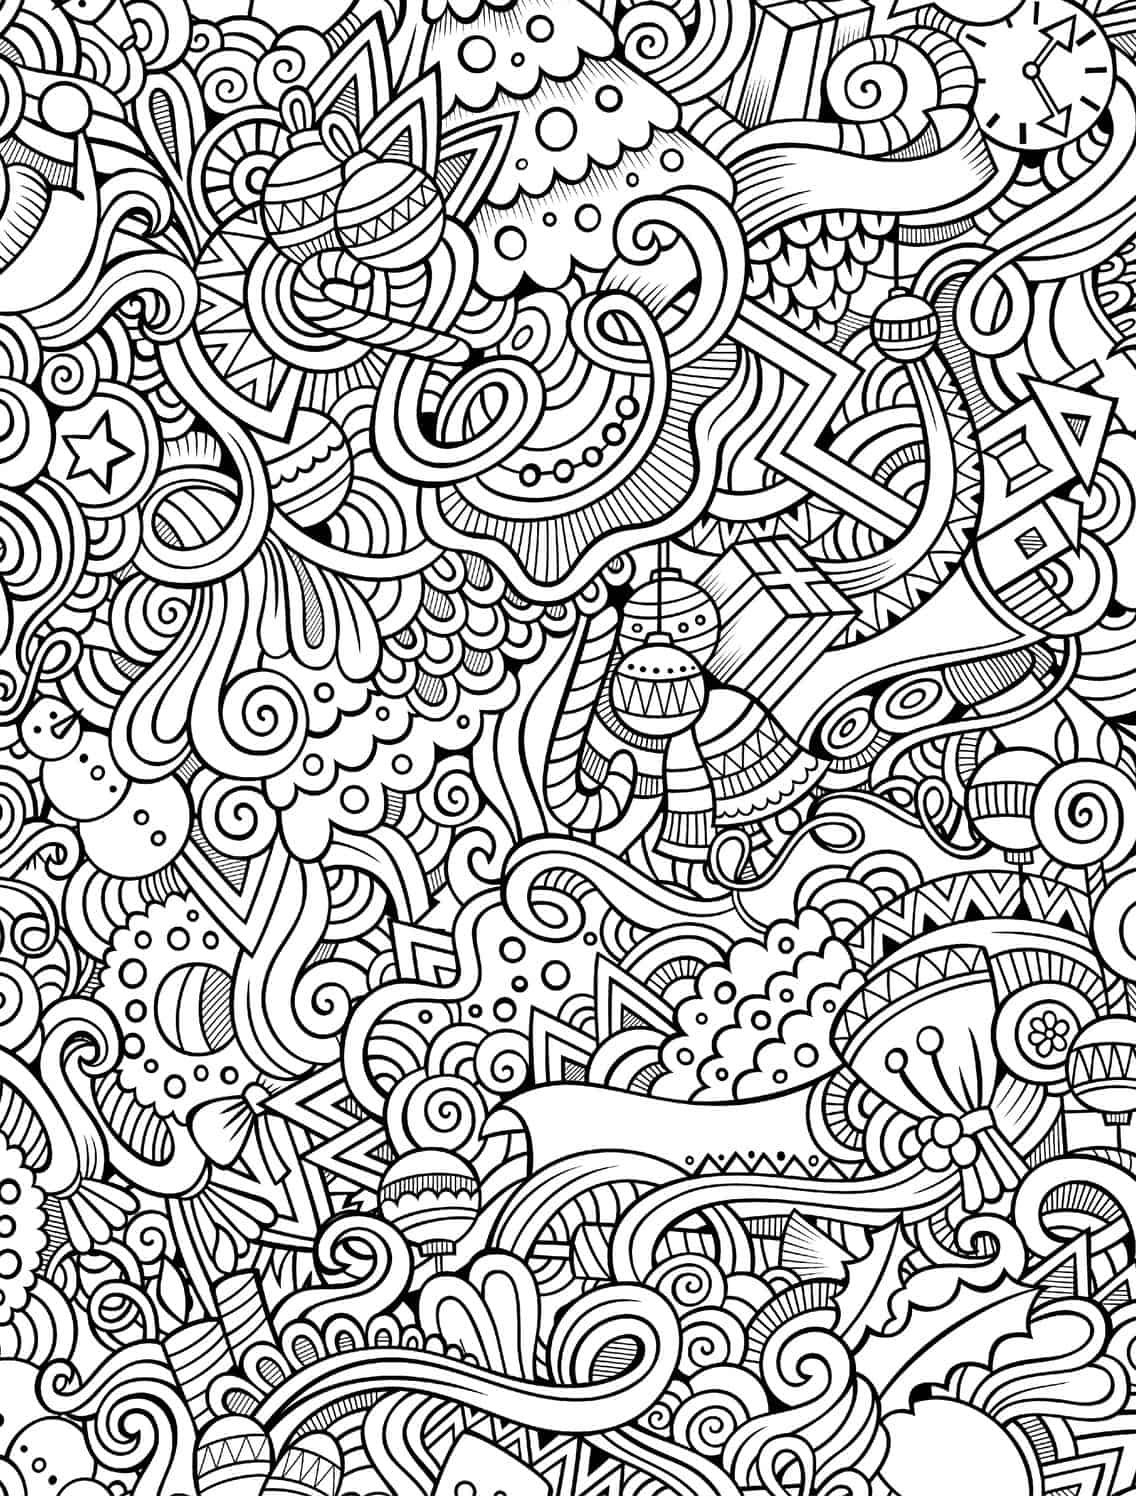 Free coloring in pages - Jpeg For All Here